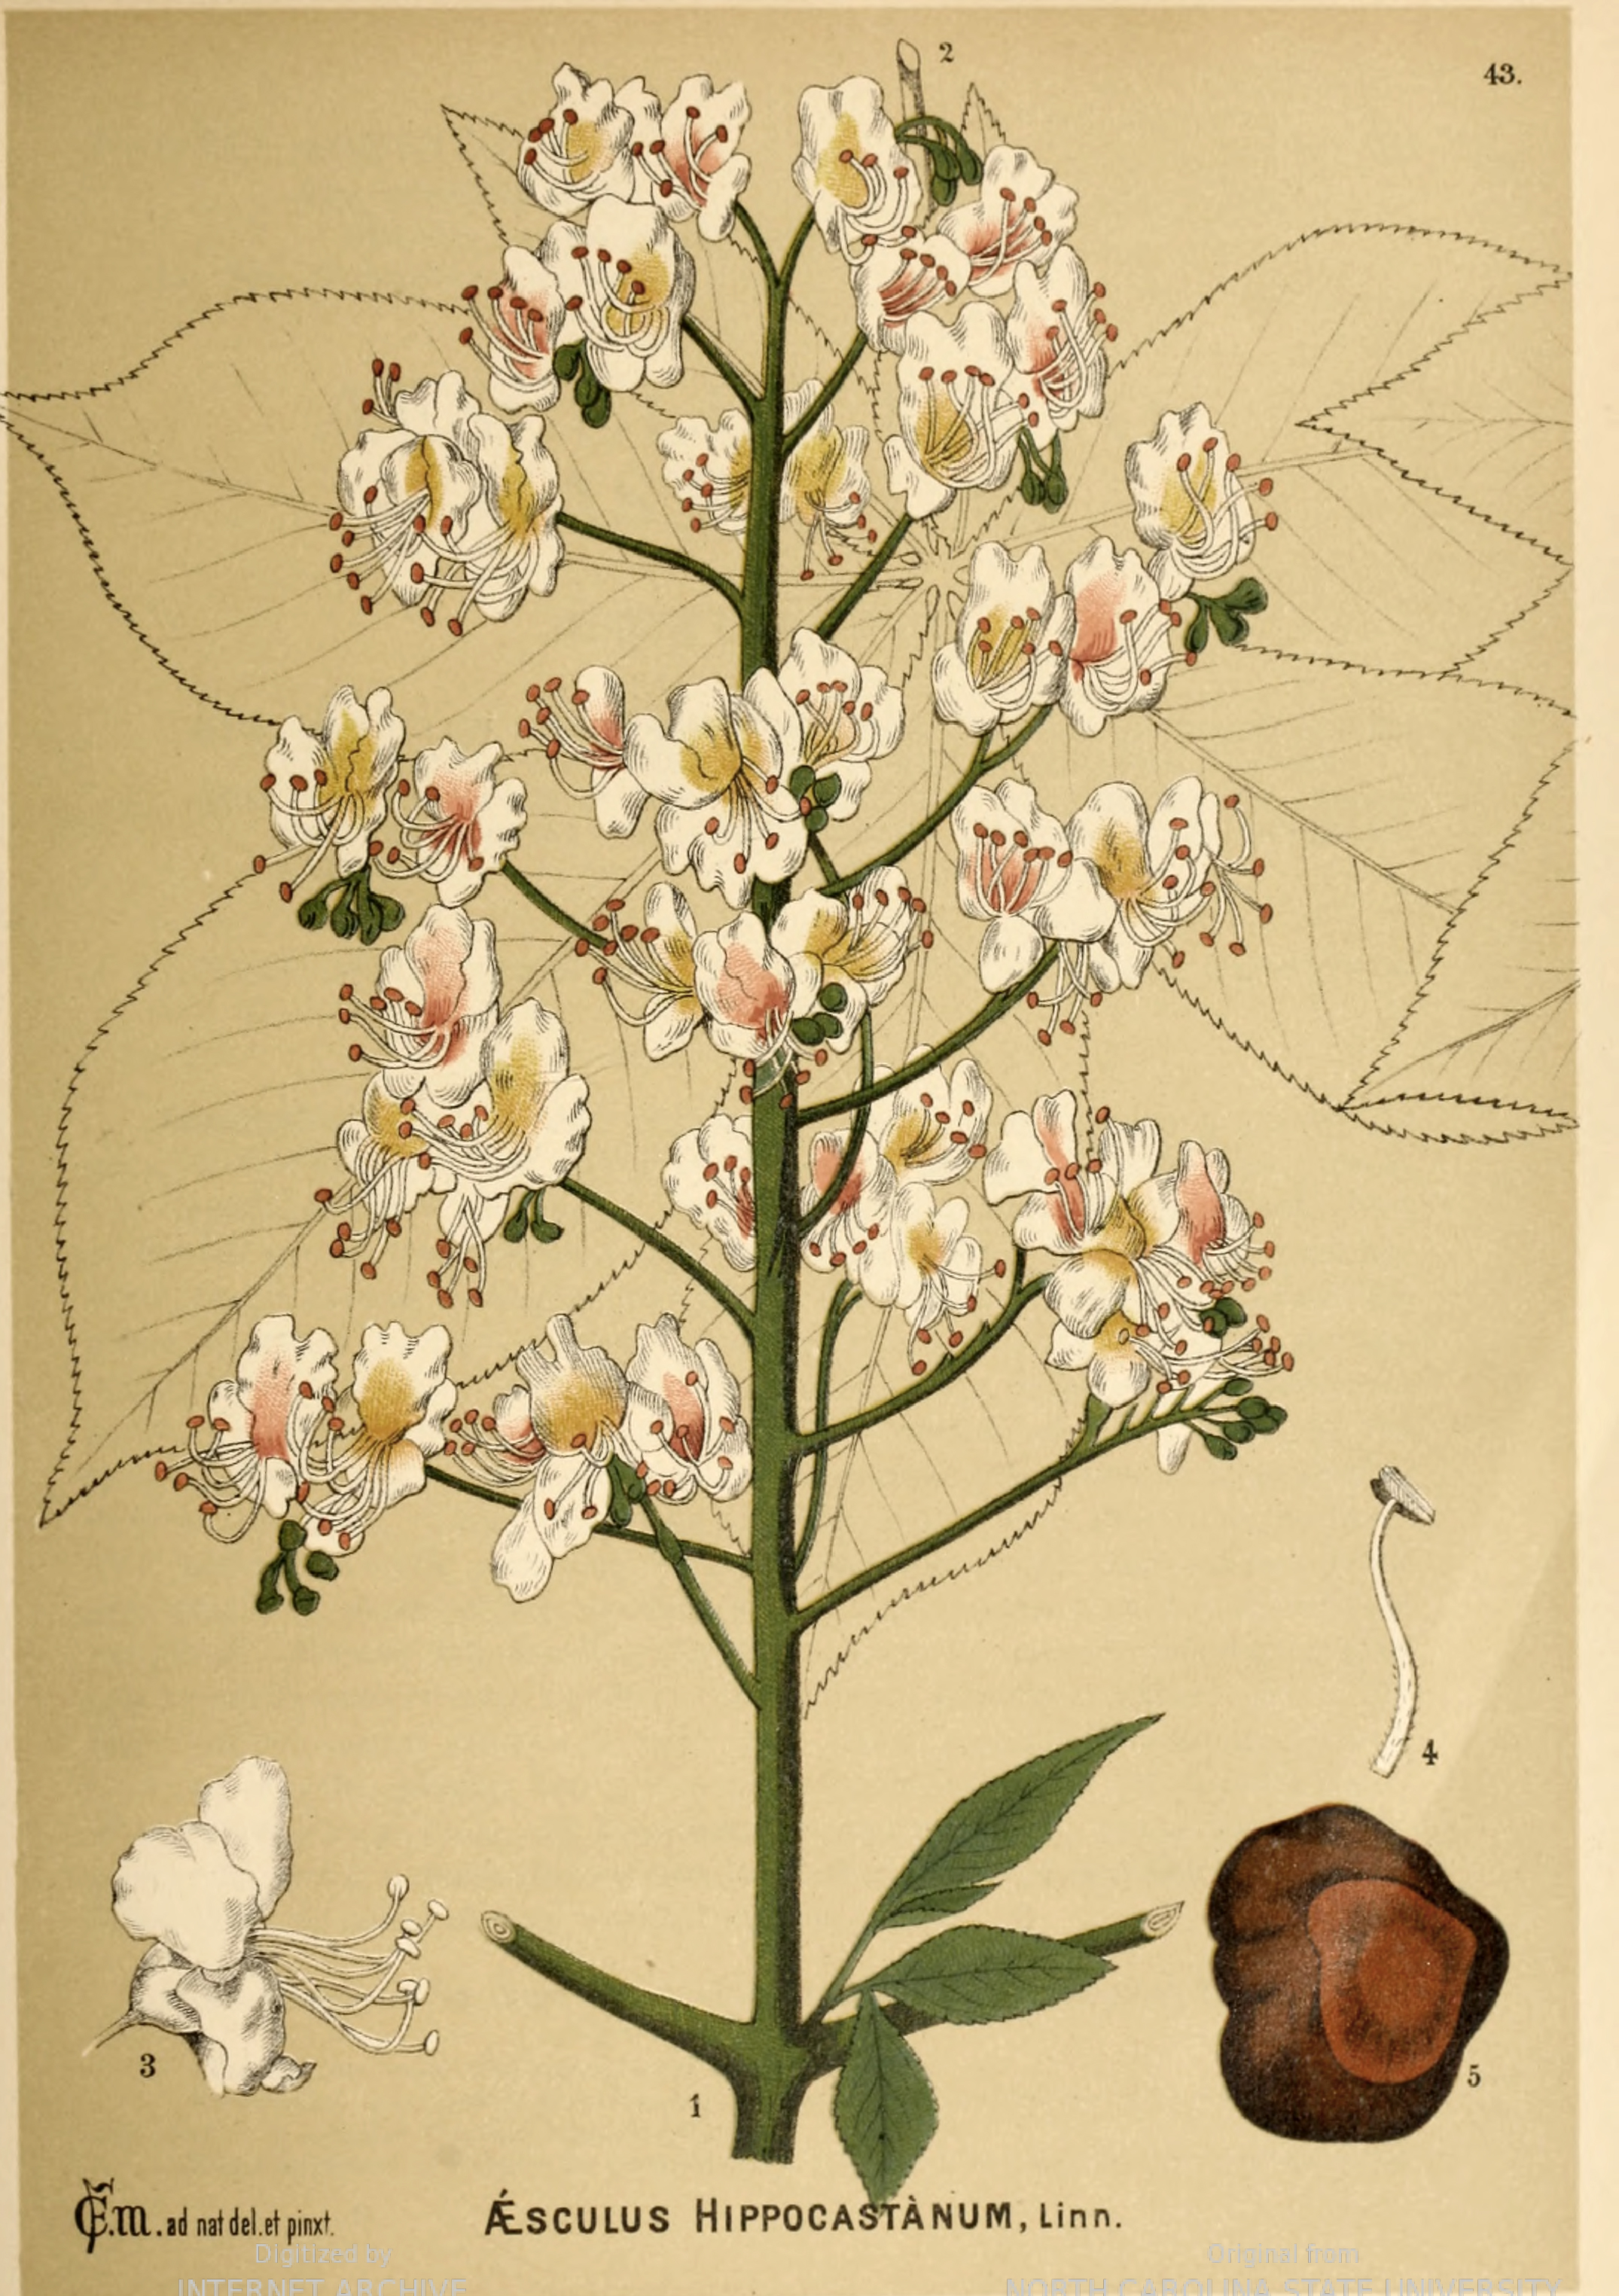 Tree_Horse Chestnut_American medicinal plants_Author Charles Millspaugh_1887.jpg